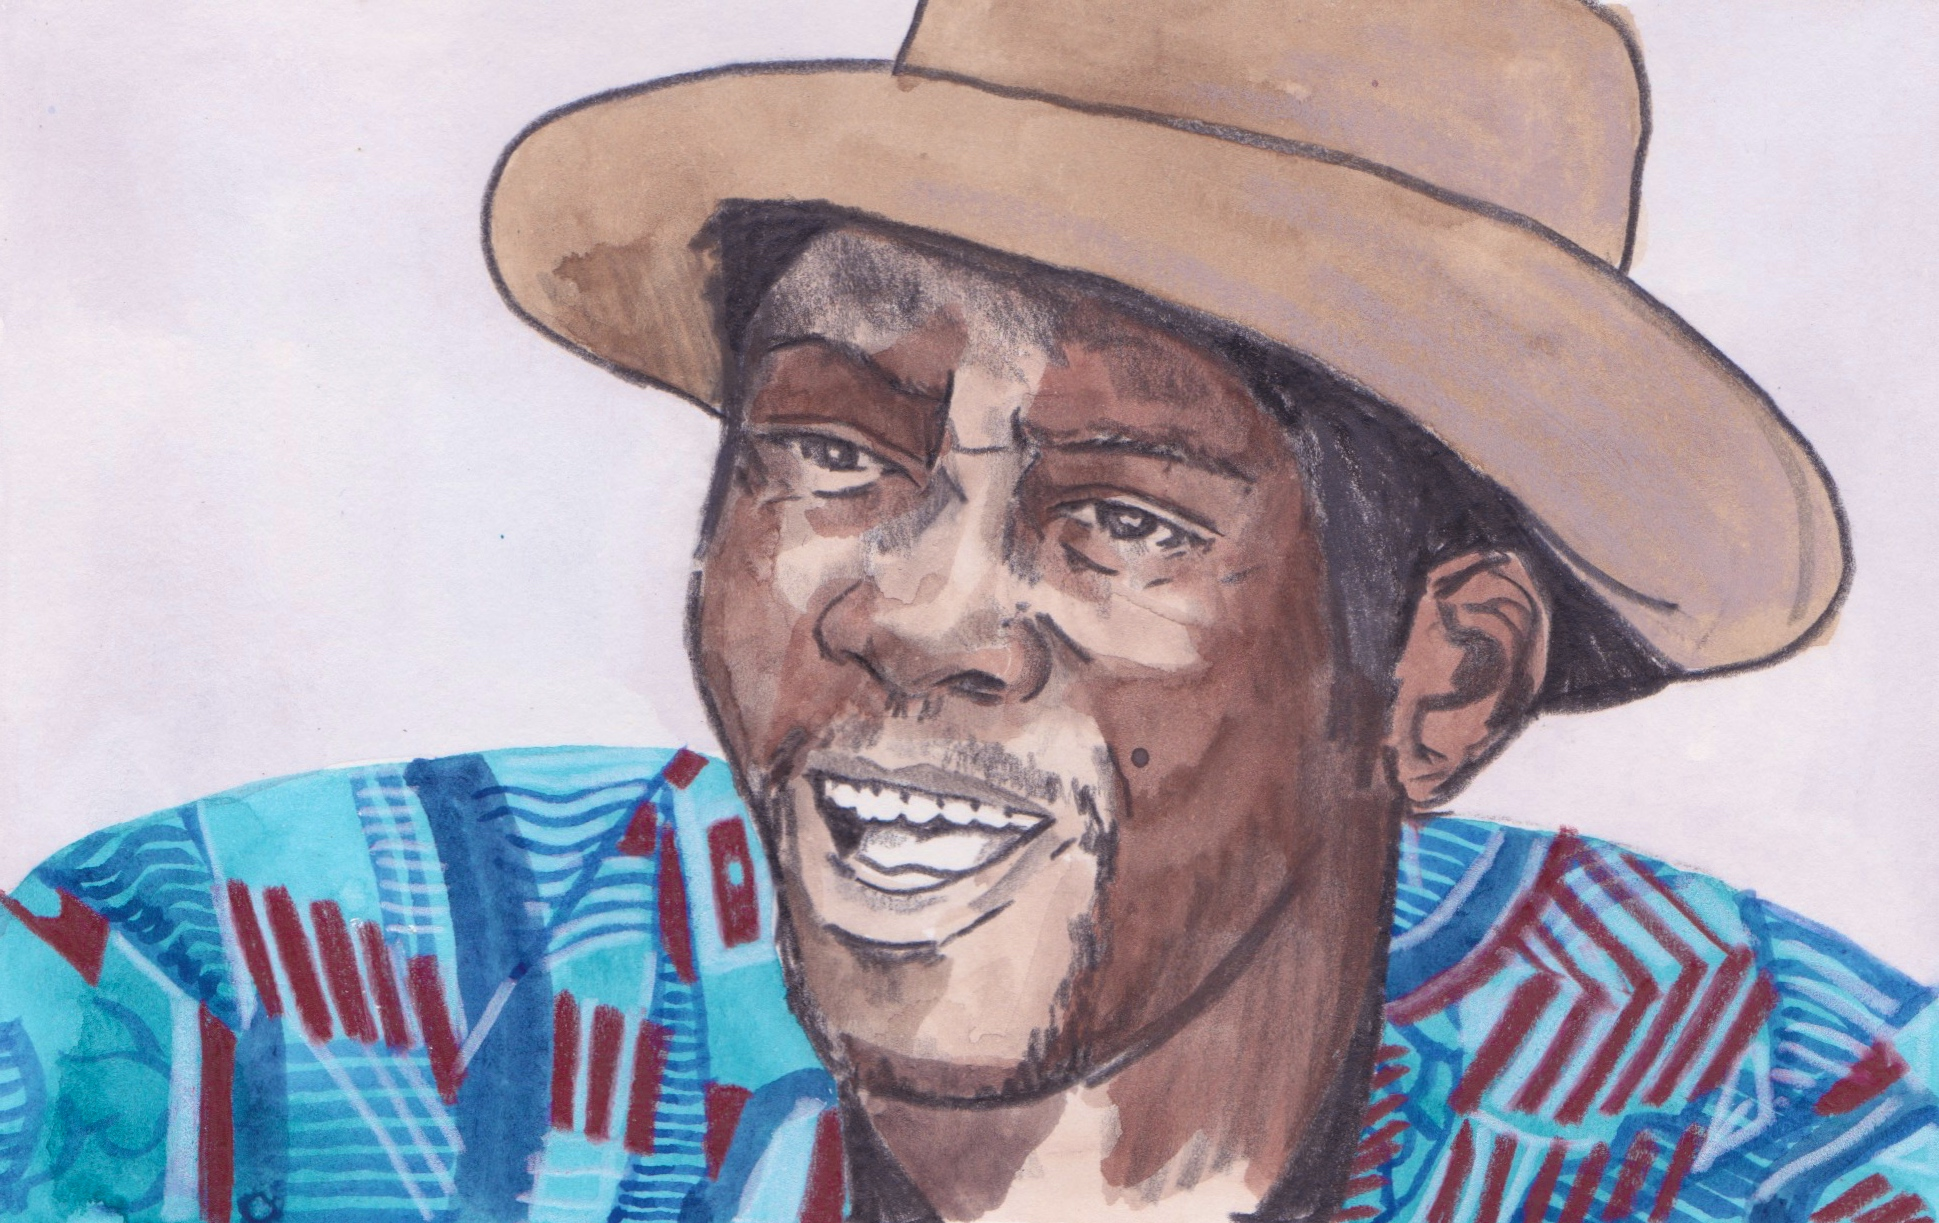 30/05/15 Ben Zabo, the musician from Mali is having a great 2015 after he toured the Sahara desert with his band. Beginning in Morocco he travelled to Timbuktu and Segou. He released his last album last year ' Wa Maliba' (Our Great Mali)